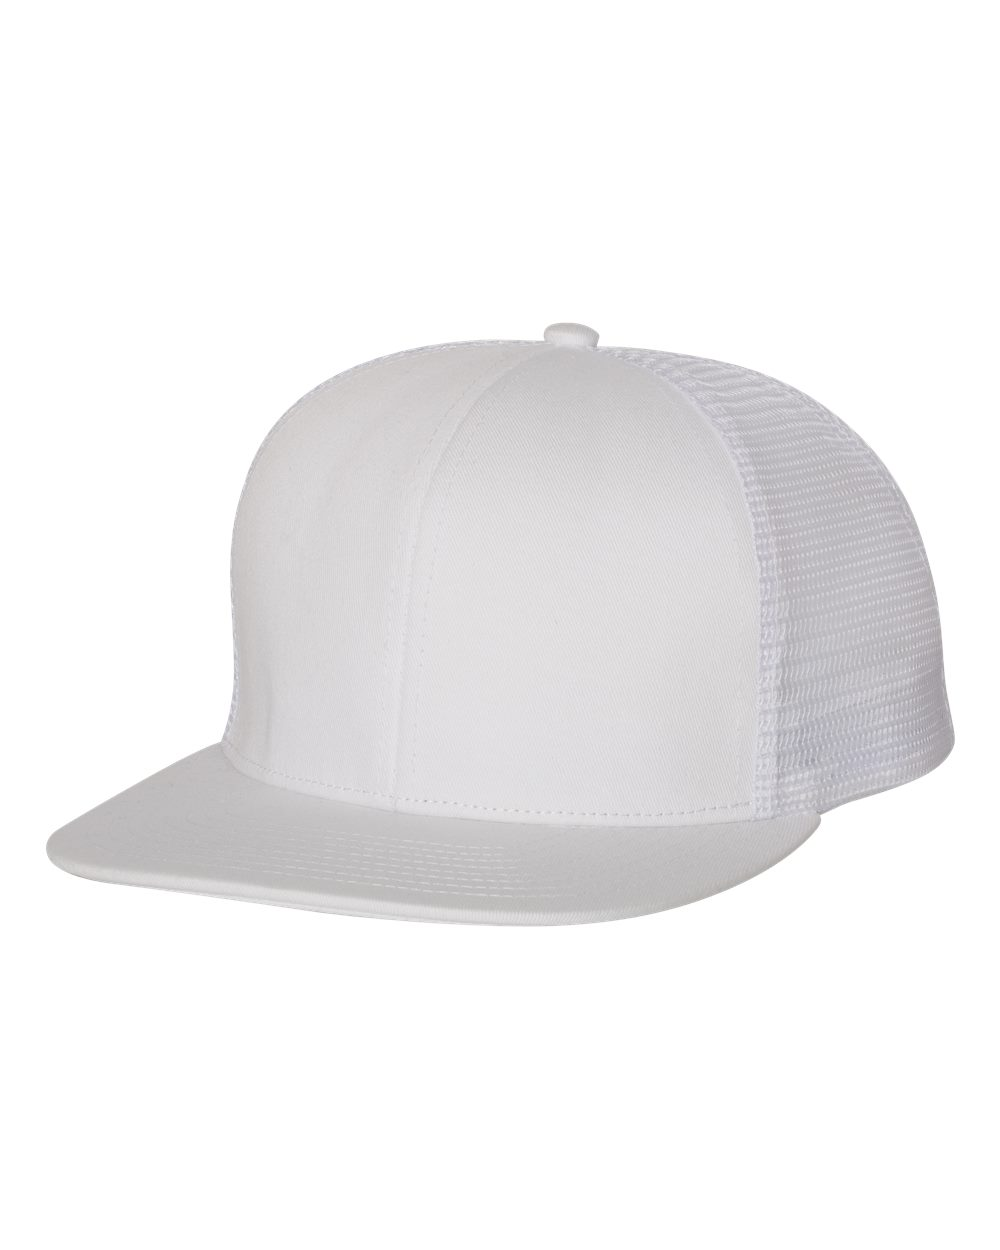 Mega Cap 6997B - Flat Bill Six-Panel Trucker Cap